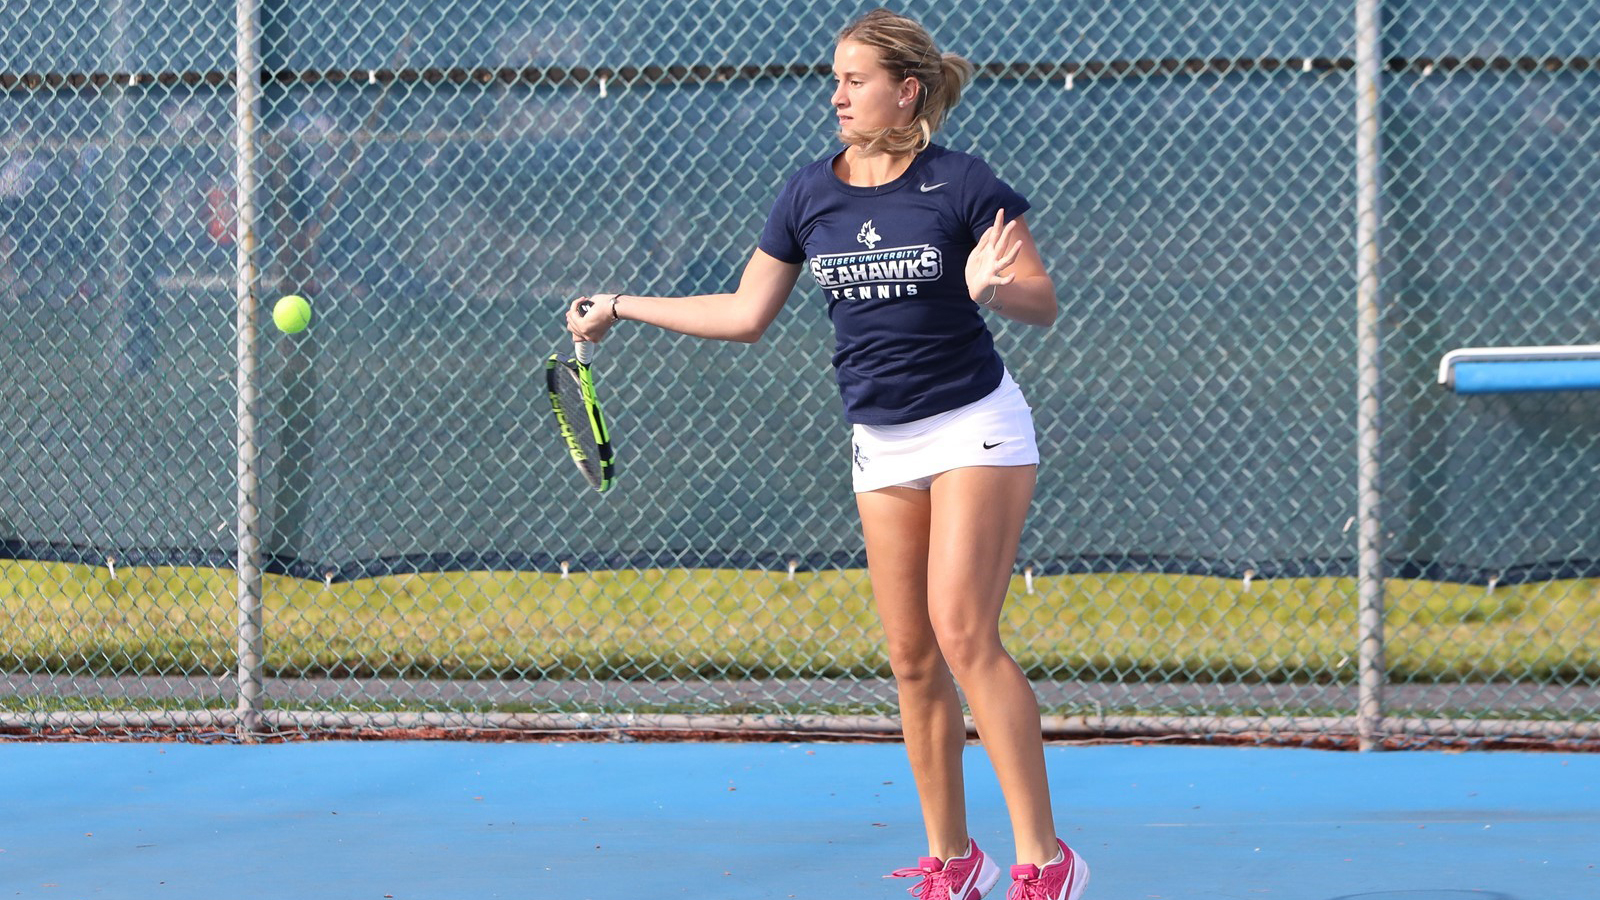 2018 NAIA Women's Tennis Coaches' Top 25 Poll ? No. 4